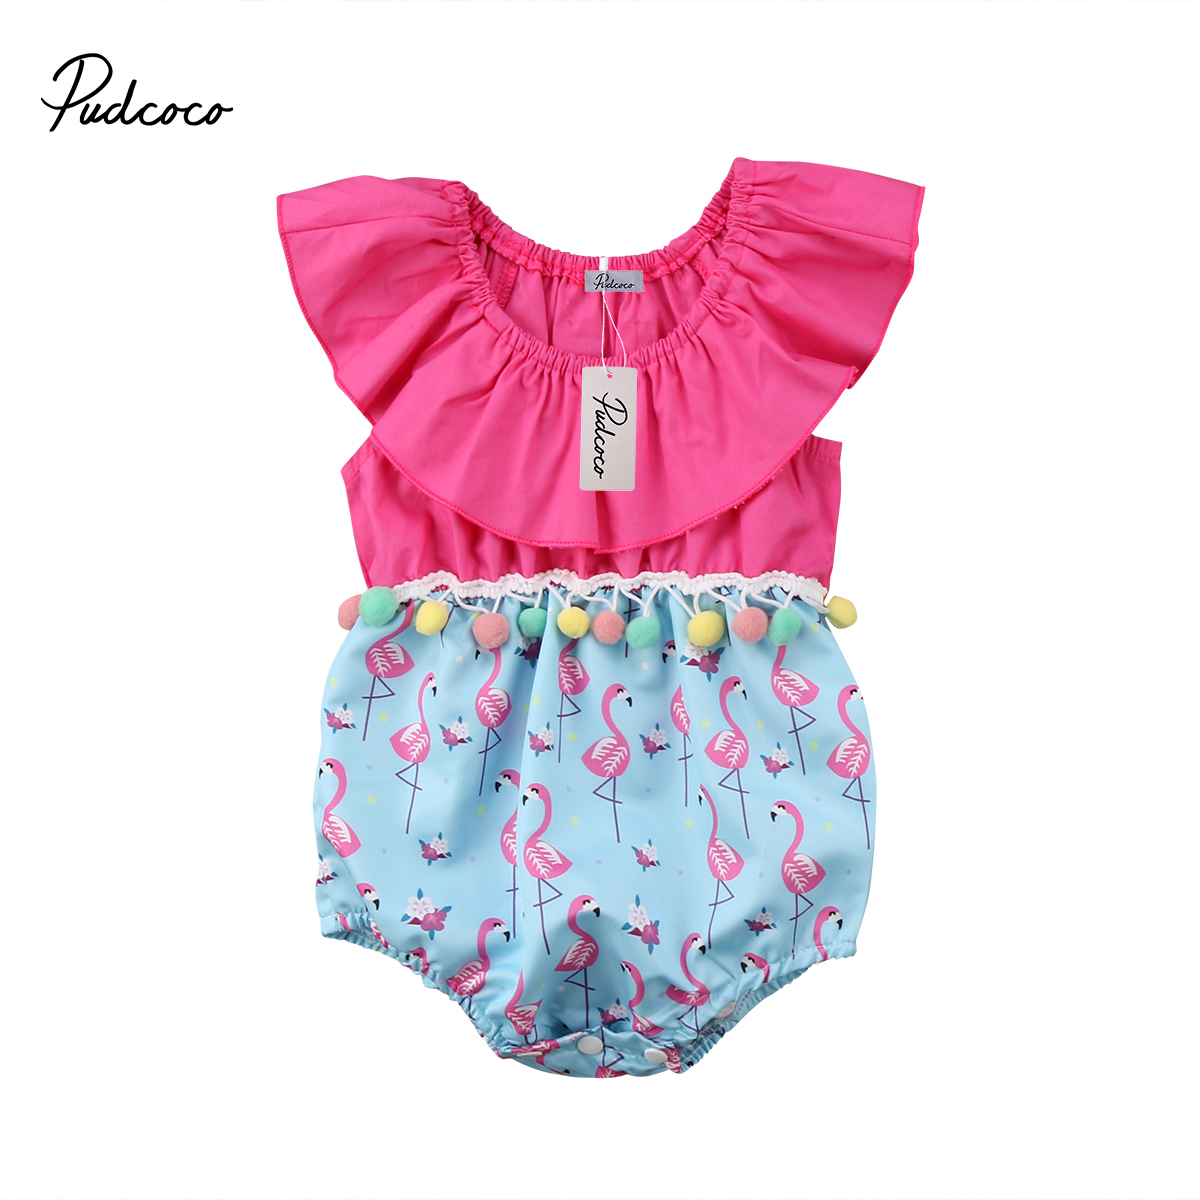 2018 Brand New Infant Toddler Newborn Flamingo font b Baby b font Girls Romper Jumpsuit Jumper